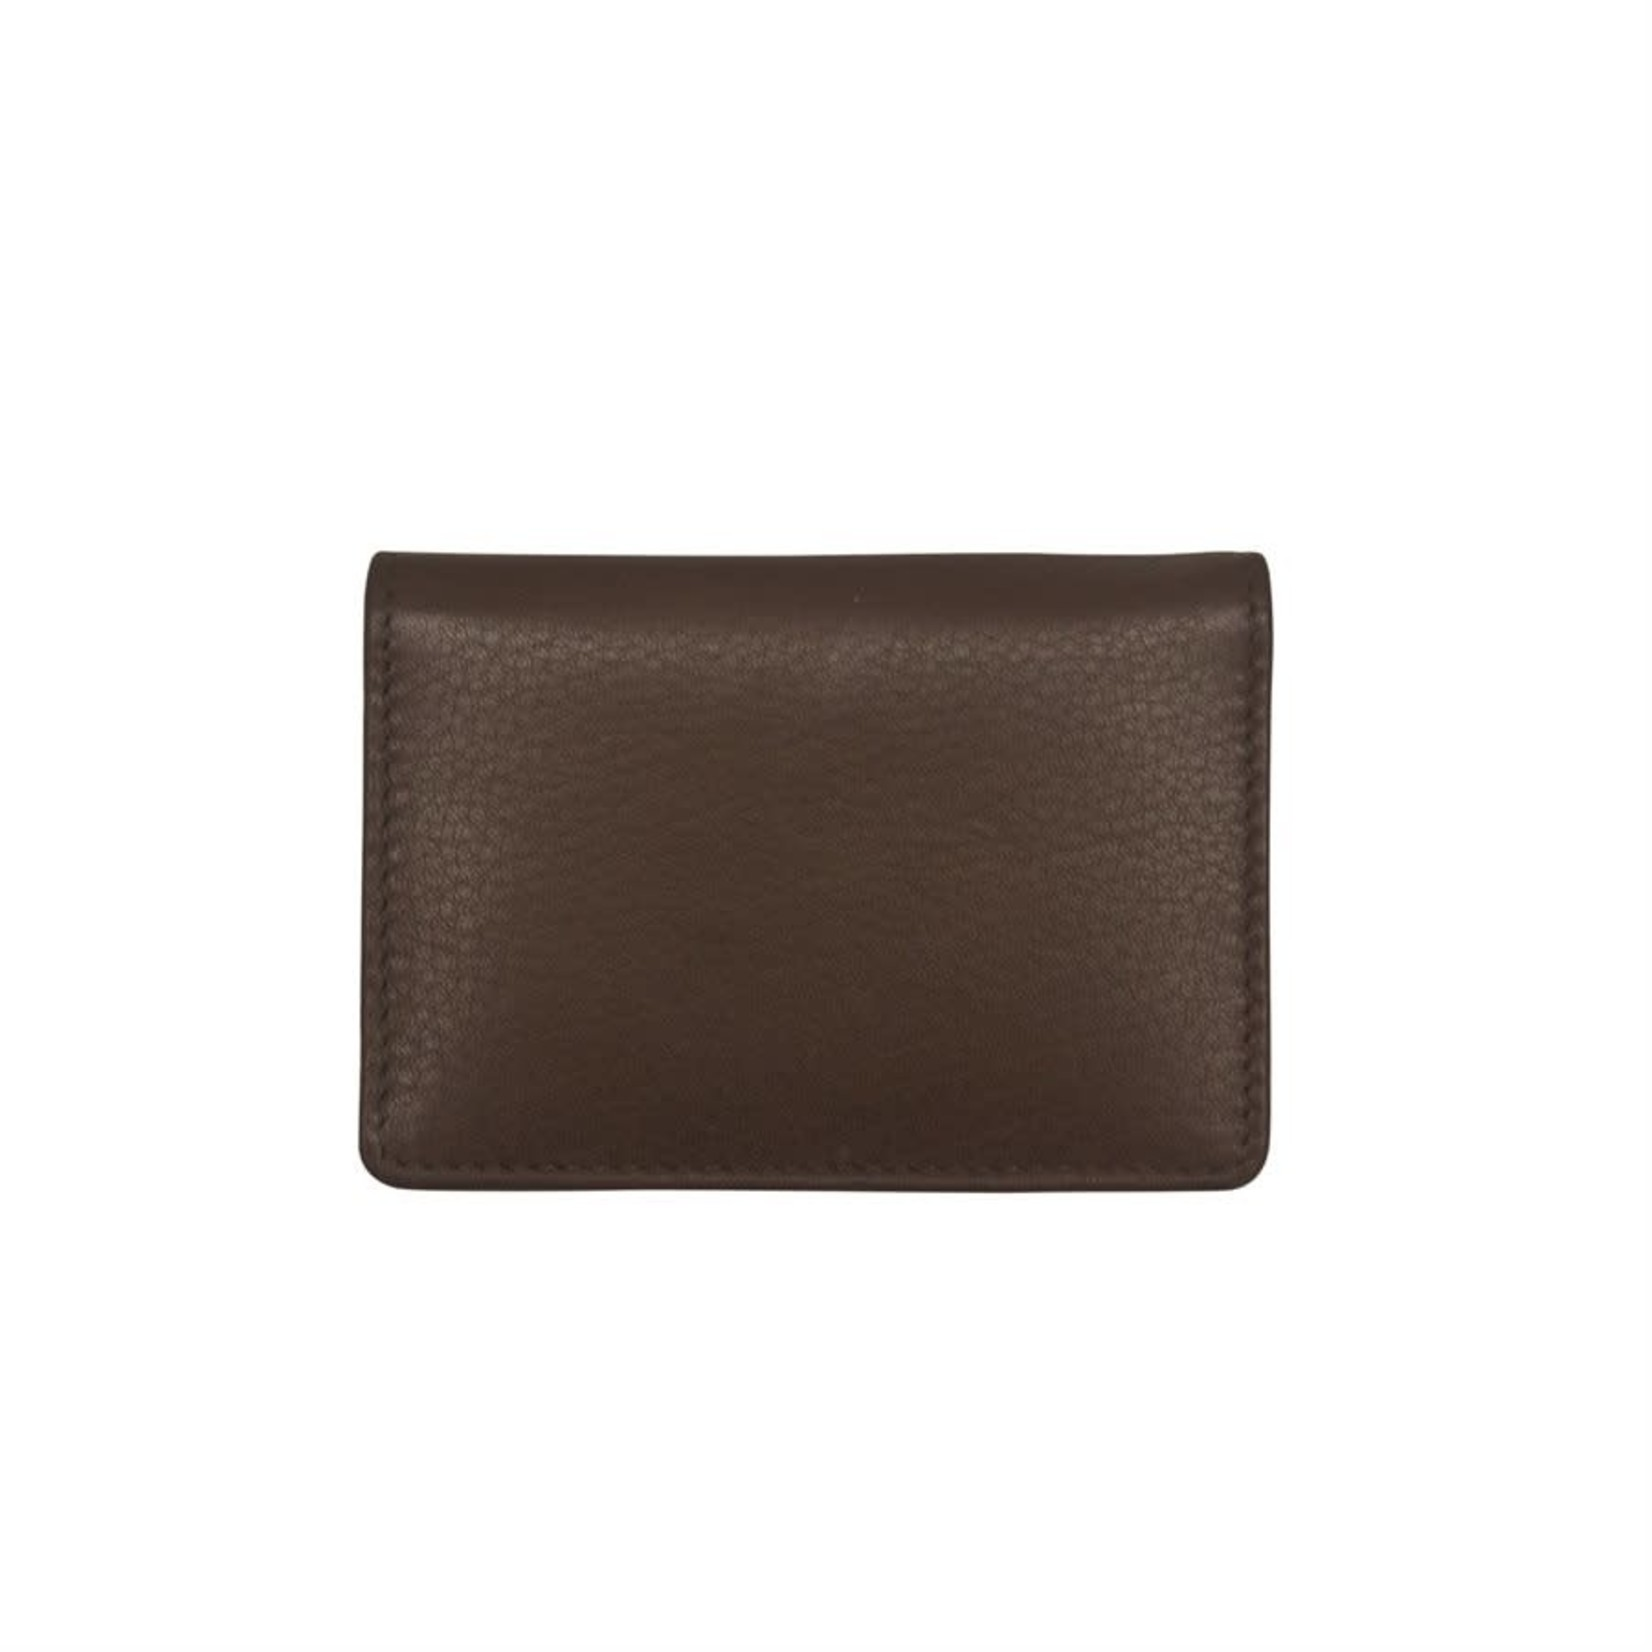 Leather Handbags and Accessories 7111 Brown - Business Card Case